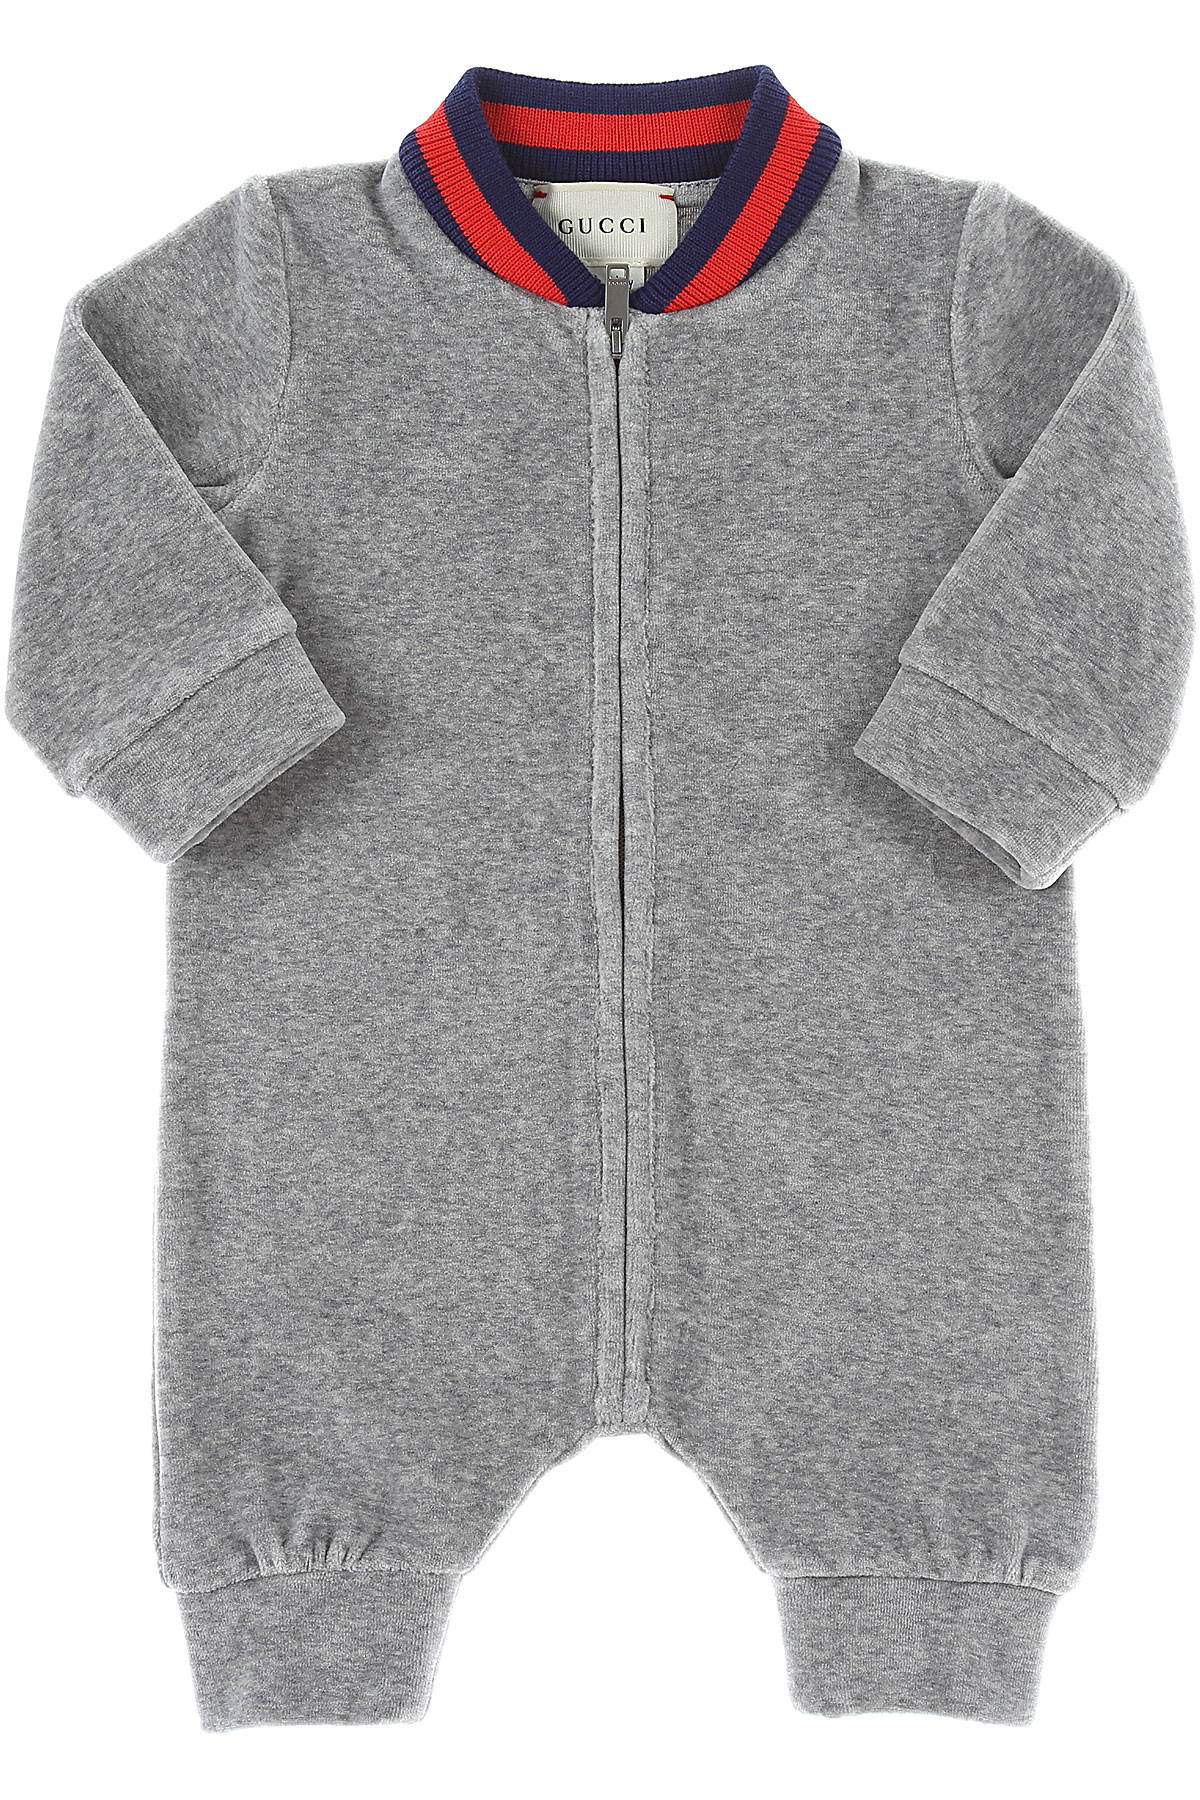 Image of Gucci Baby Bodysuits & Onesies for Boys, Grey, Cotton, 2017, 1M 3M 6M